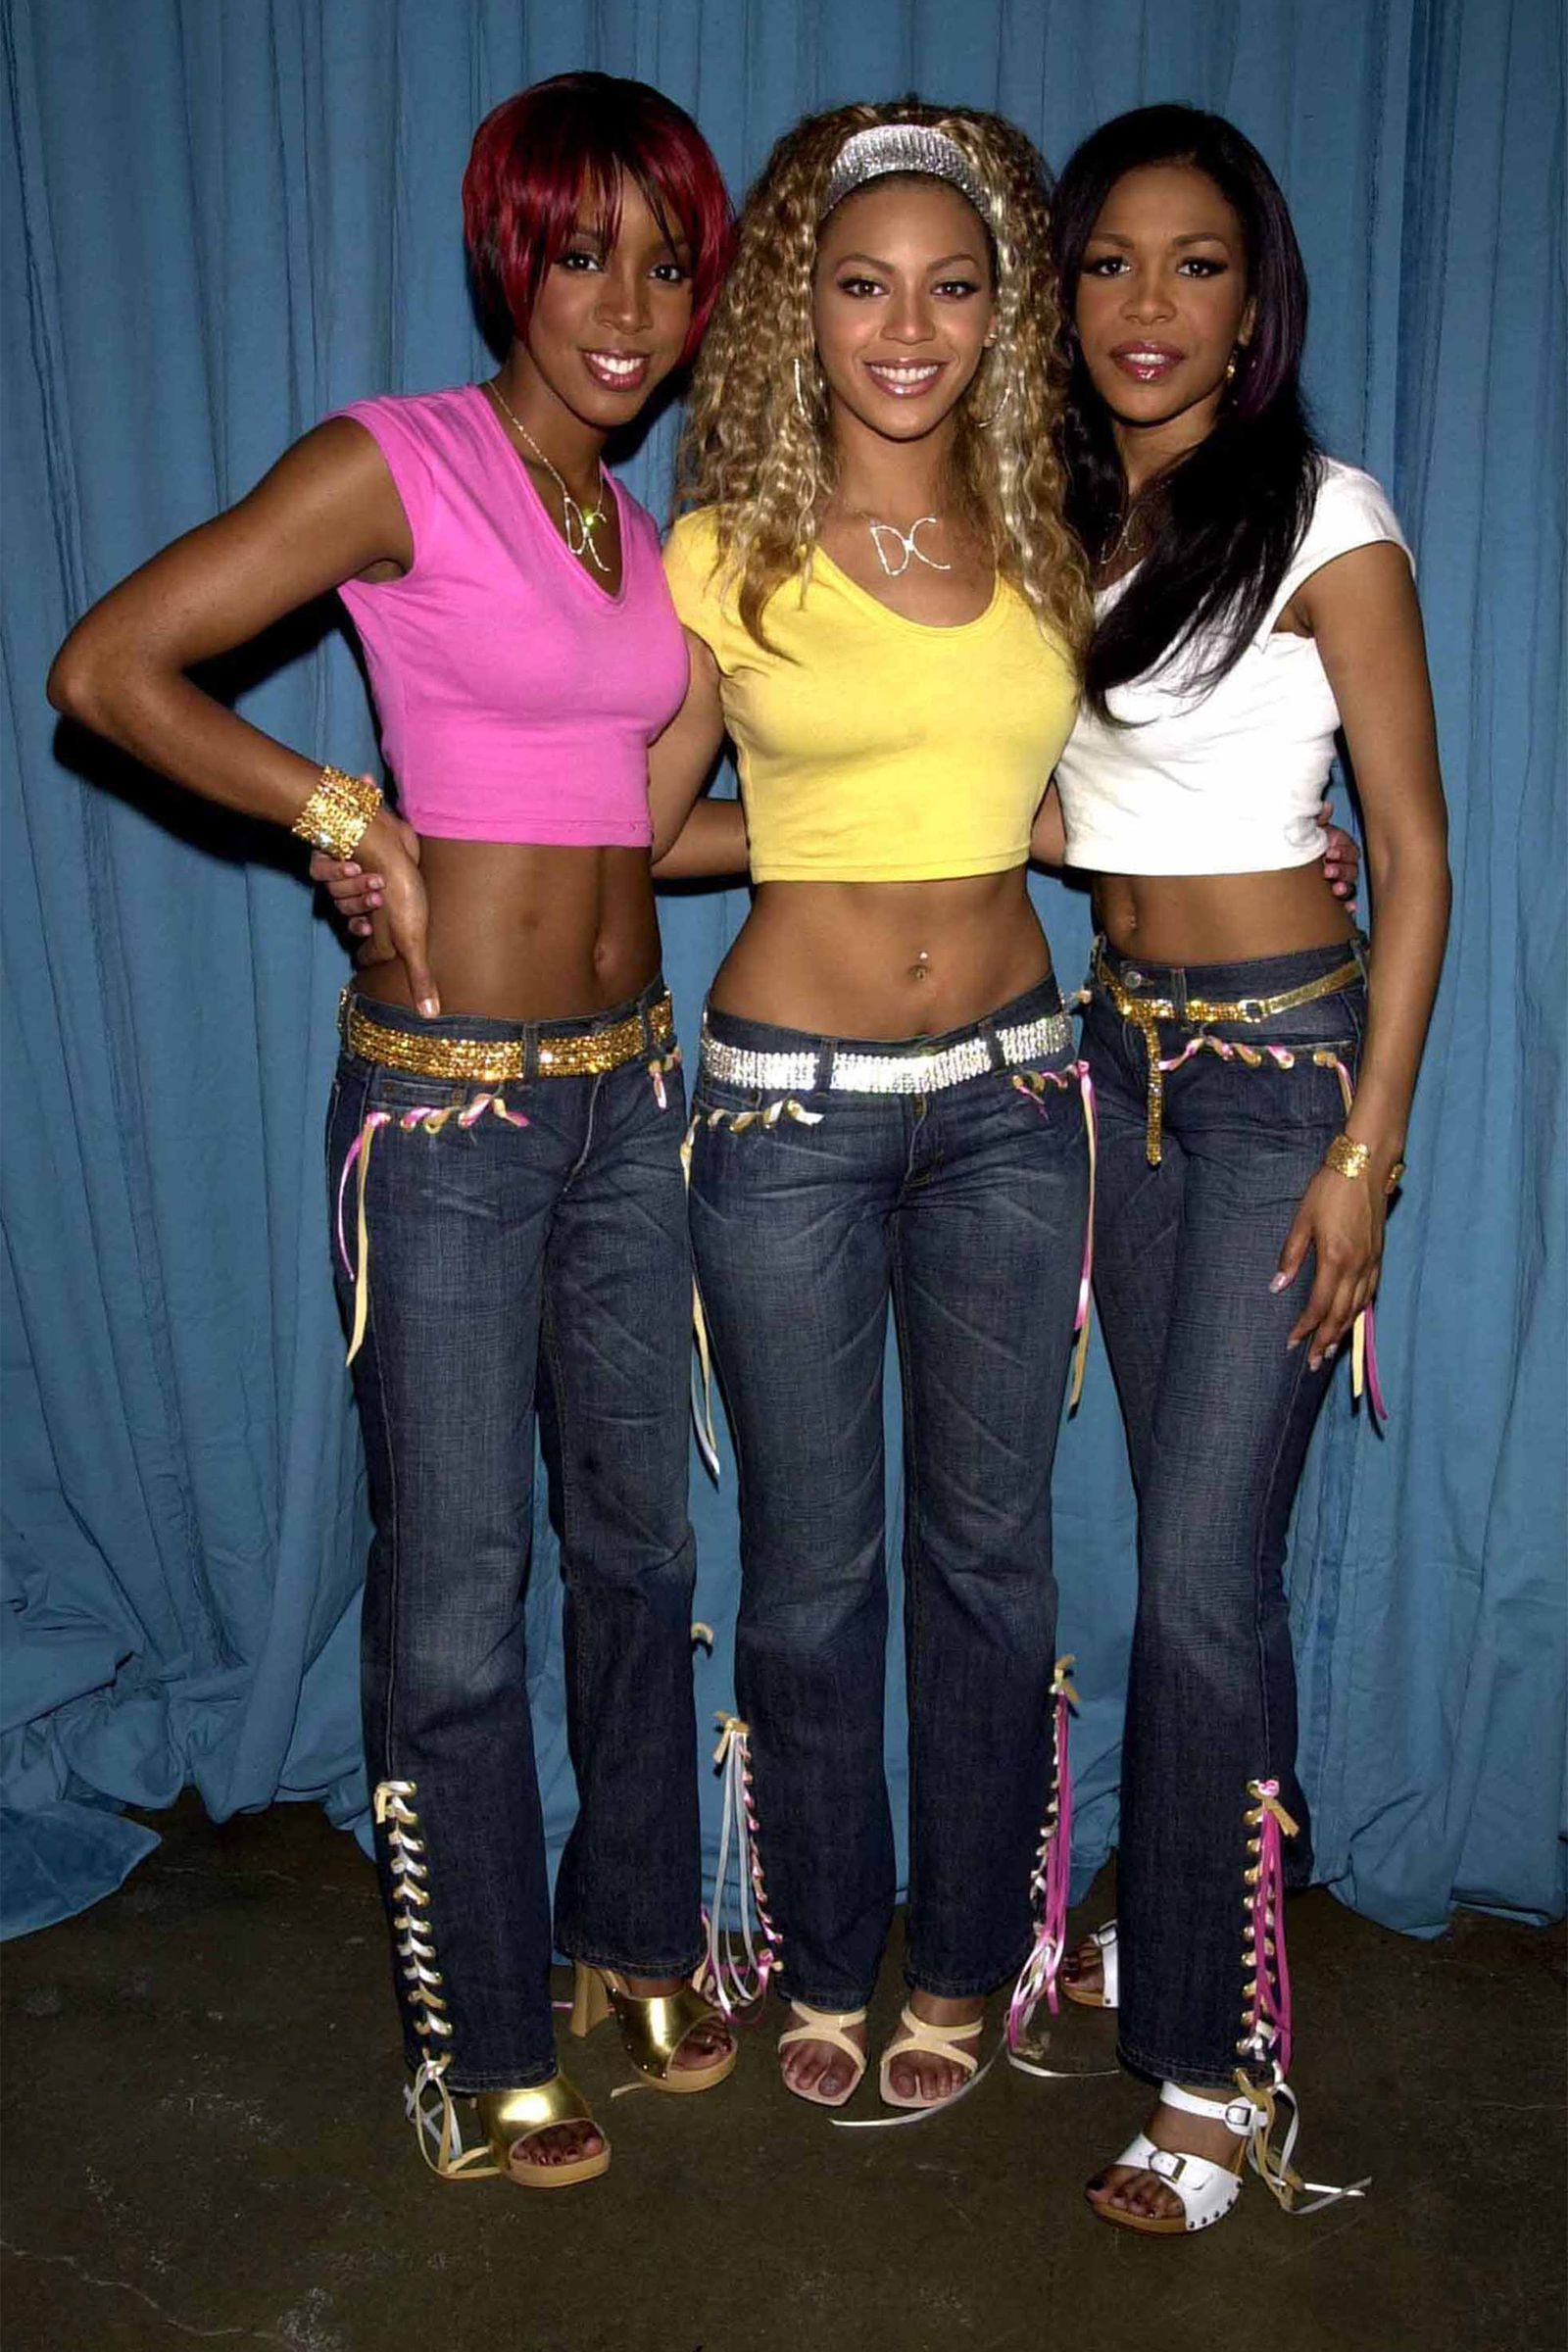 The 50 Craziest Most Cringe Worthy Outfits Celebrities Wore In The Early 2000s 2000s Fashion Outfits 2000s Fashion Trends Early 2000s Fashion